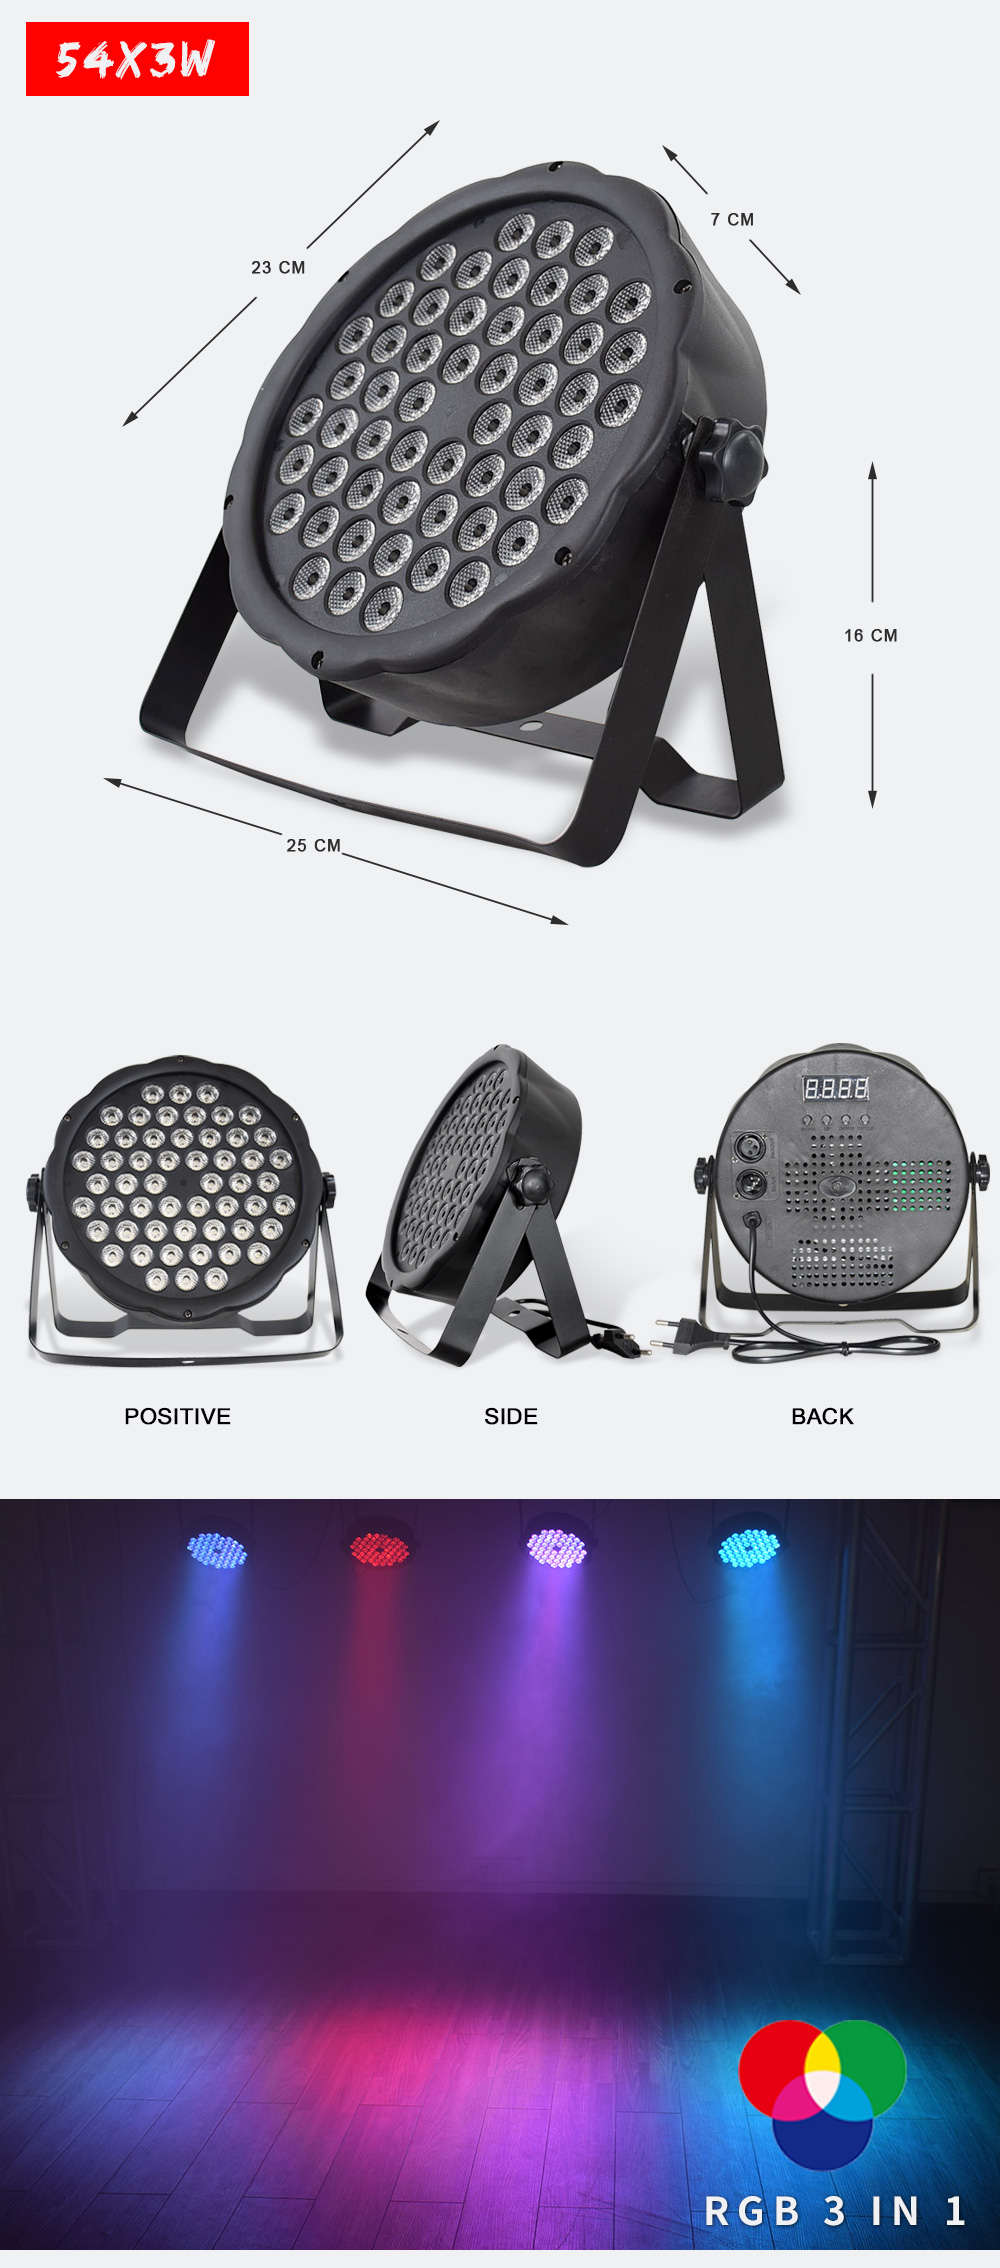 H55a1348f256c4c04bf49b2f3384a4abe5 - China dj par slim led par 7x12W RGBW 4IN1 dmx led par light rgbw No Noise